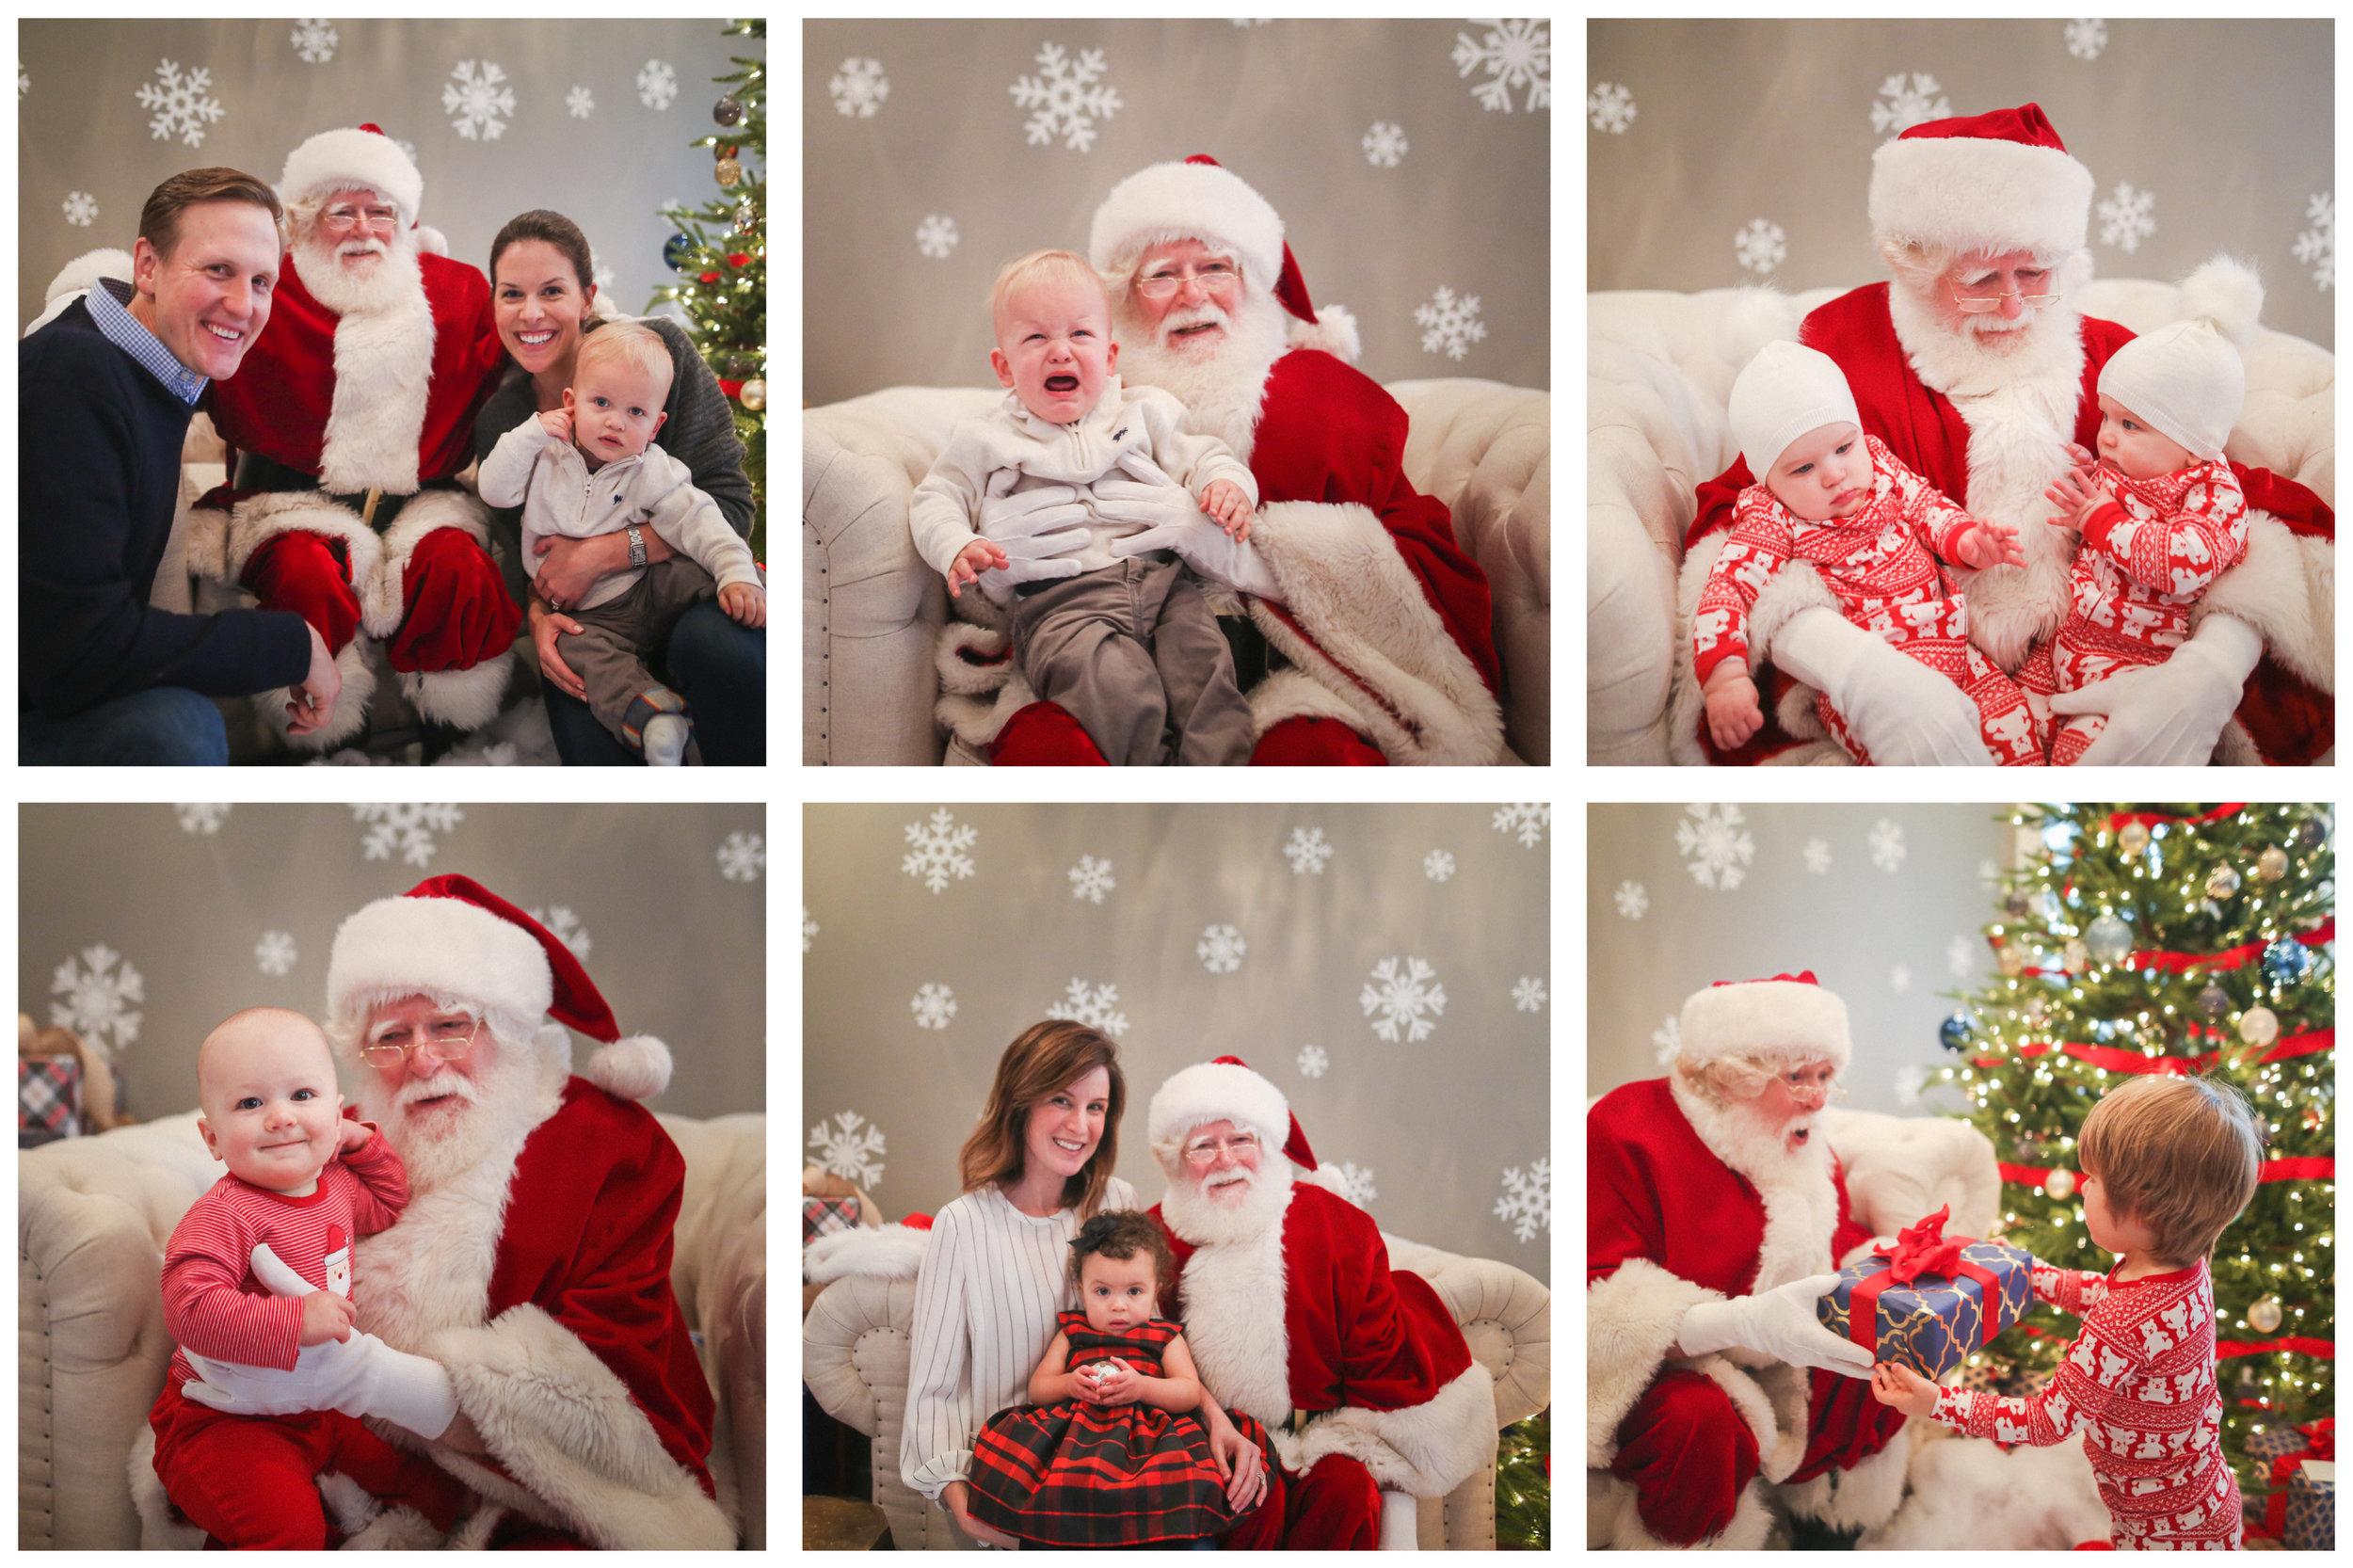 CHICAGO SANTA LIFESTYLE STUDIO PORTRAITS JENNY GRIMM FAMILY PHOTOGRAPHY